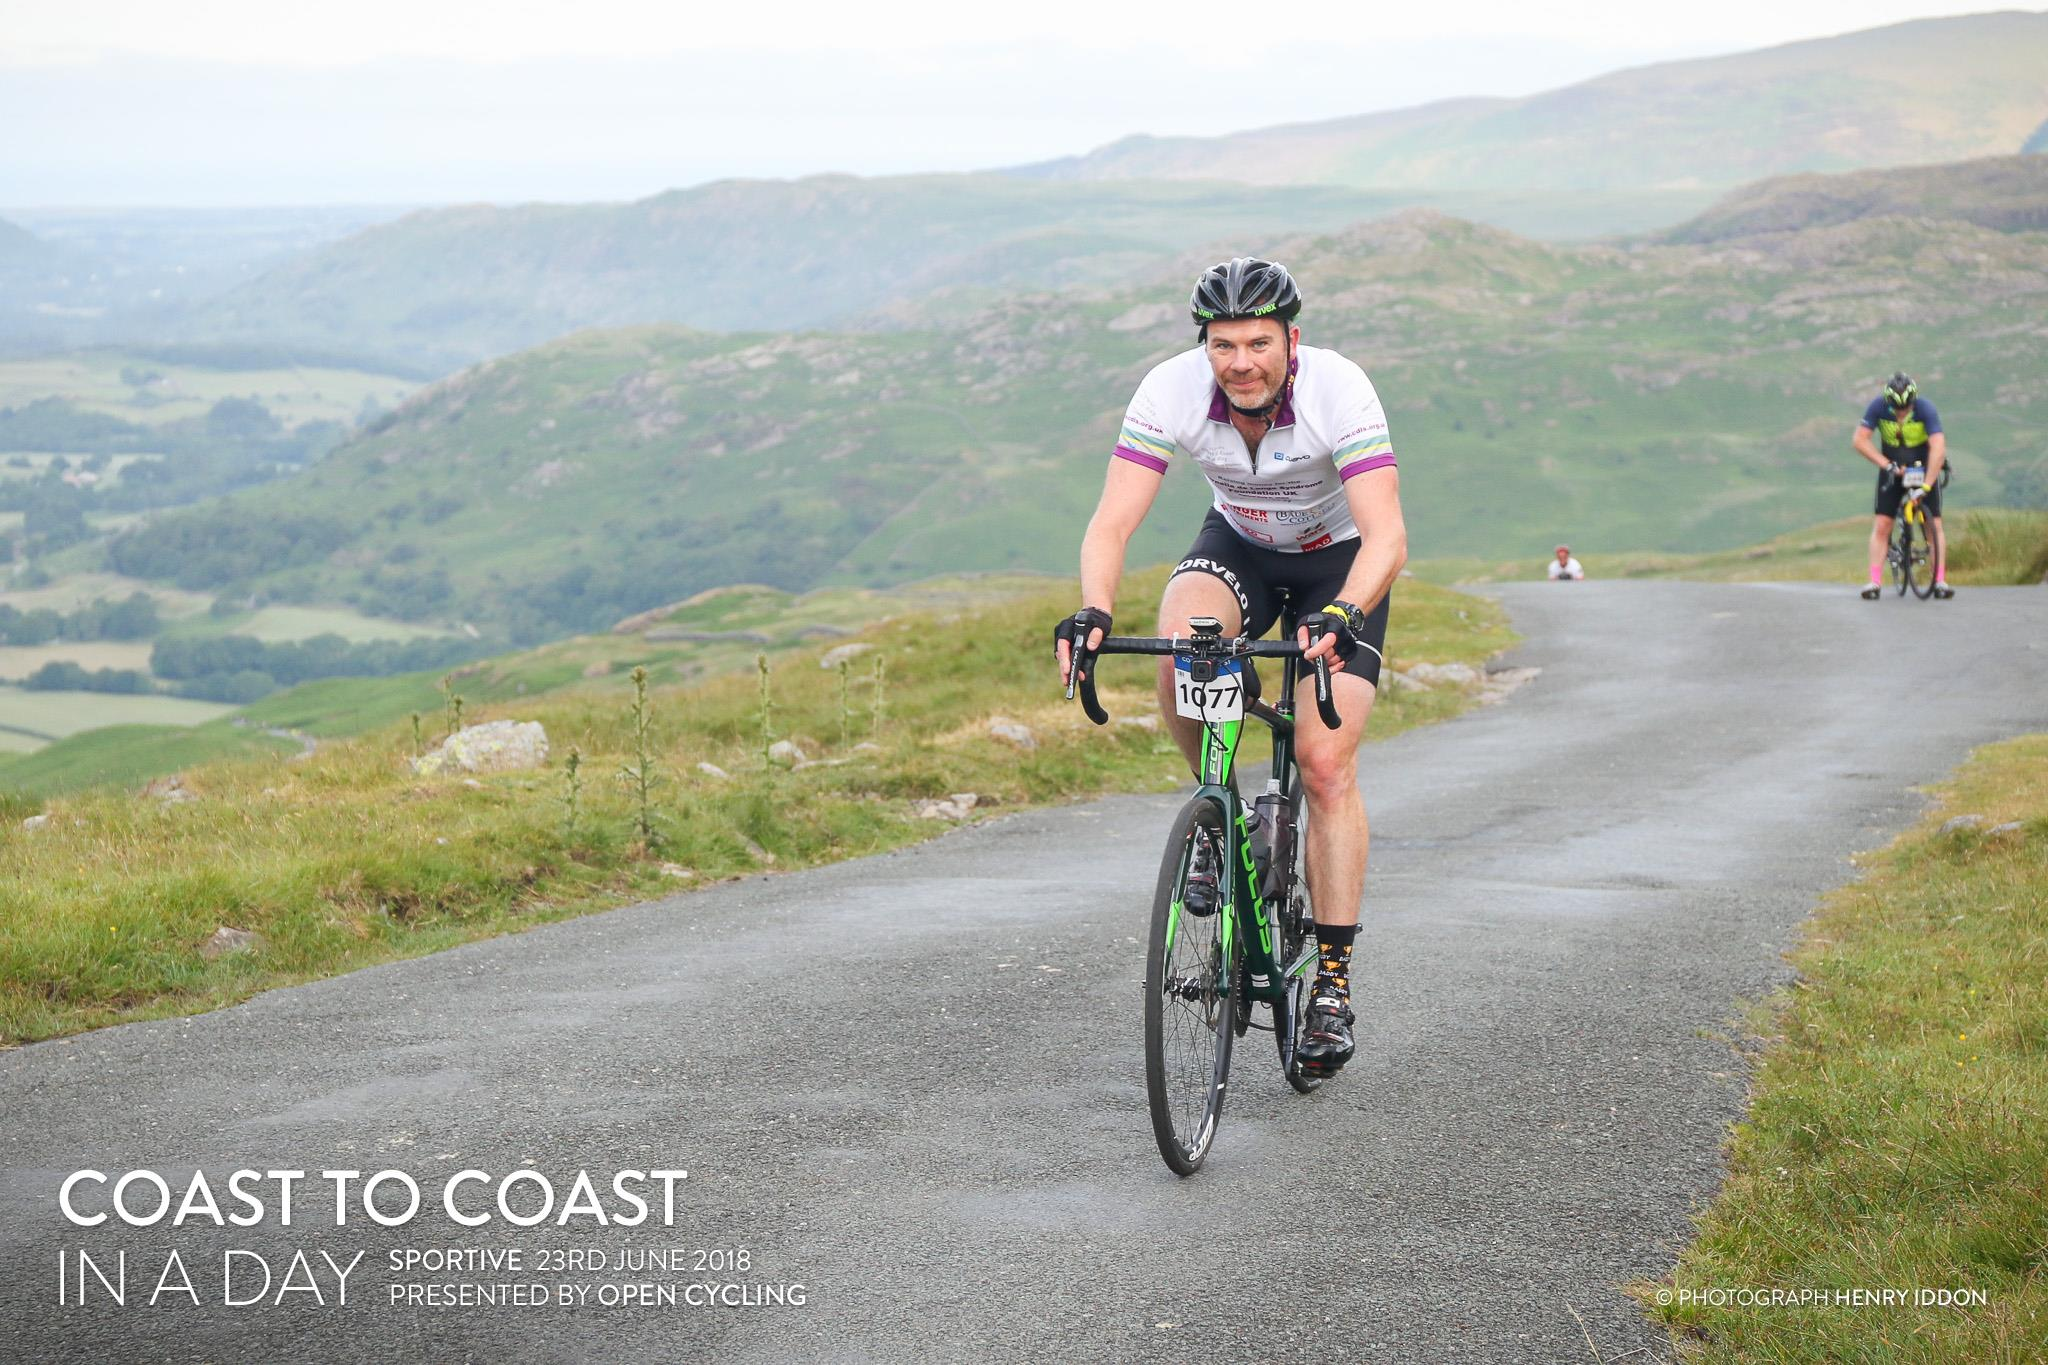 Northern Coast to Coast challenge (150 miles with 4500 metres of ascent) - EPIC!